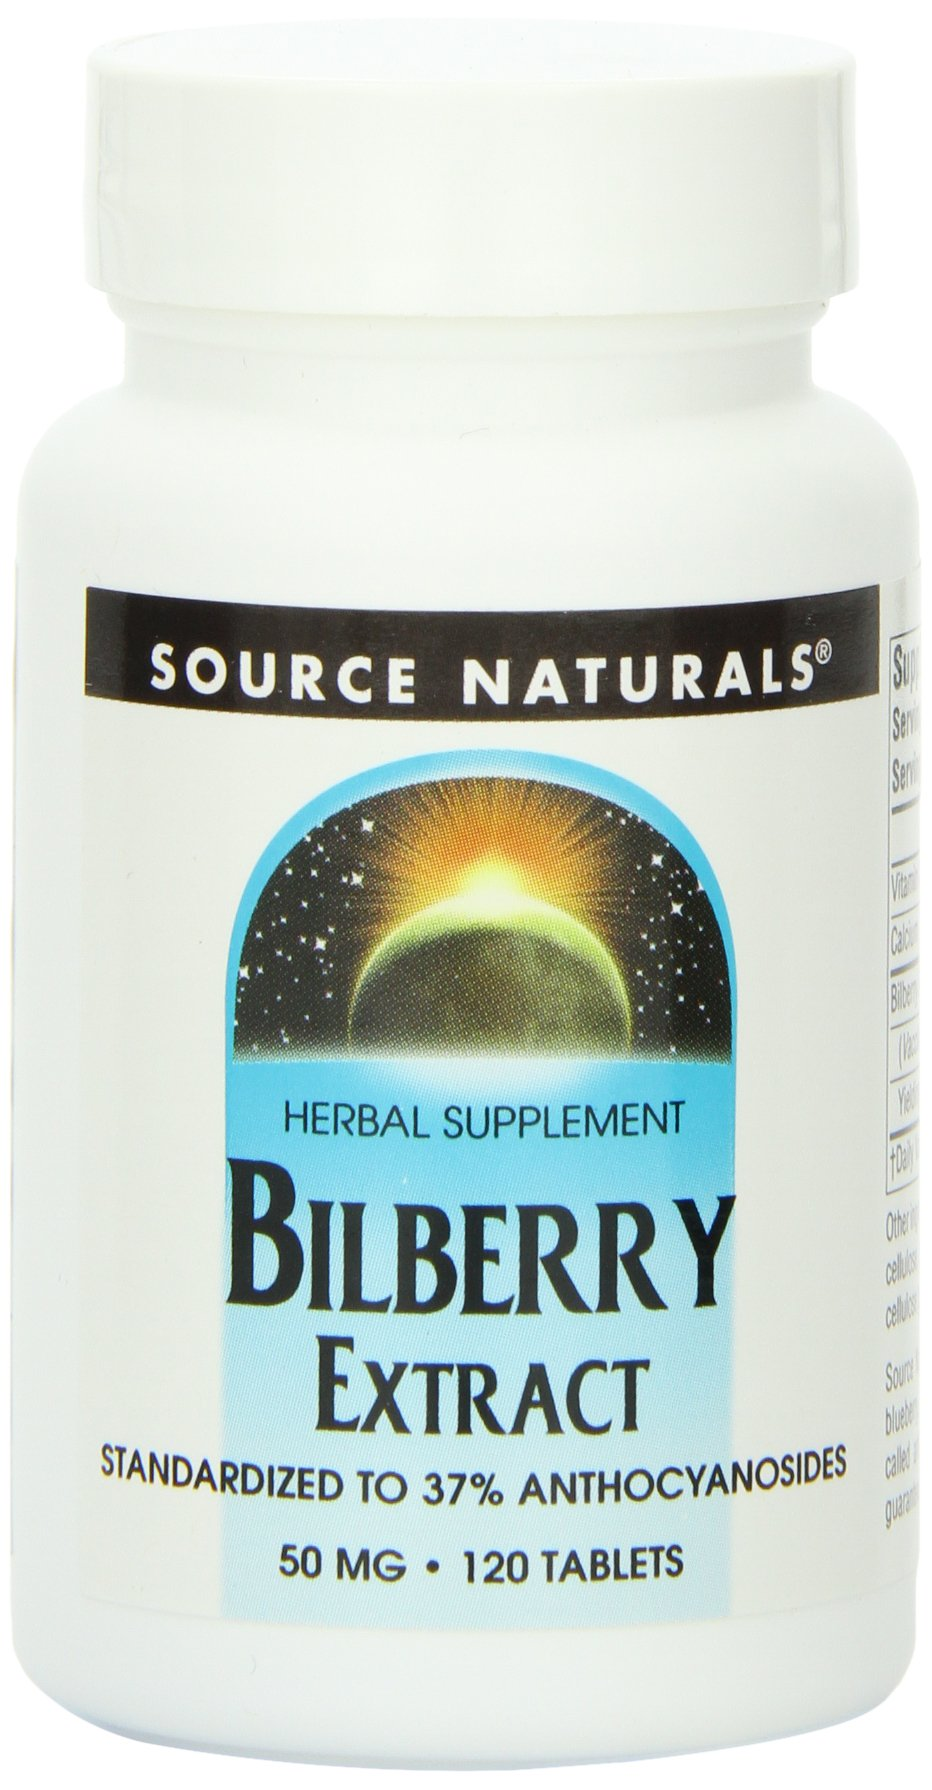 Source Naturals Bilberry Extract 50mg, 120 Tablets